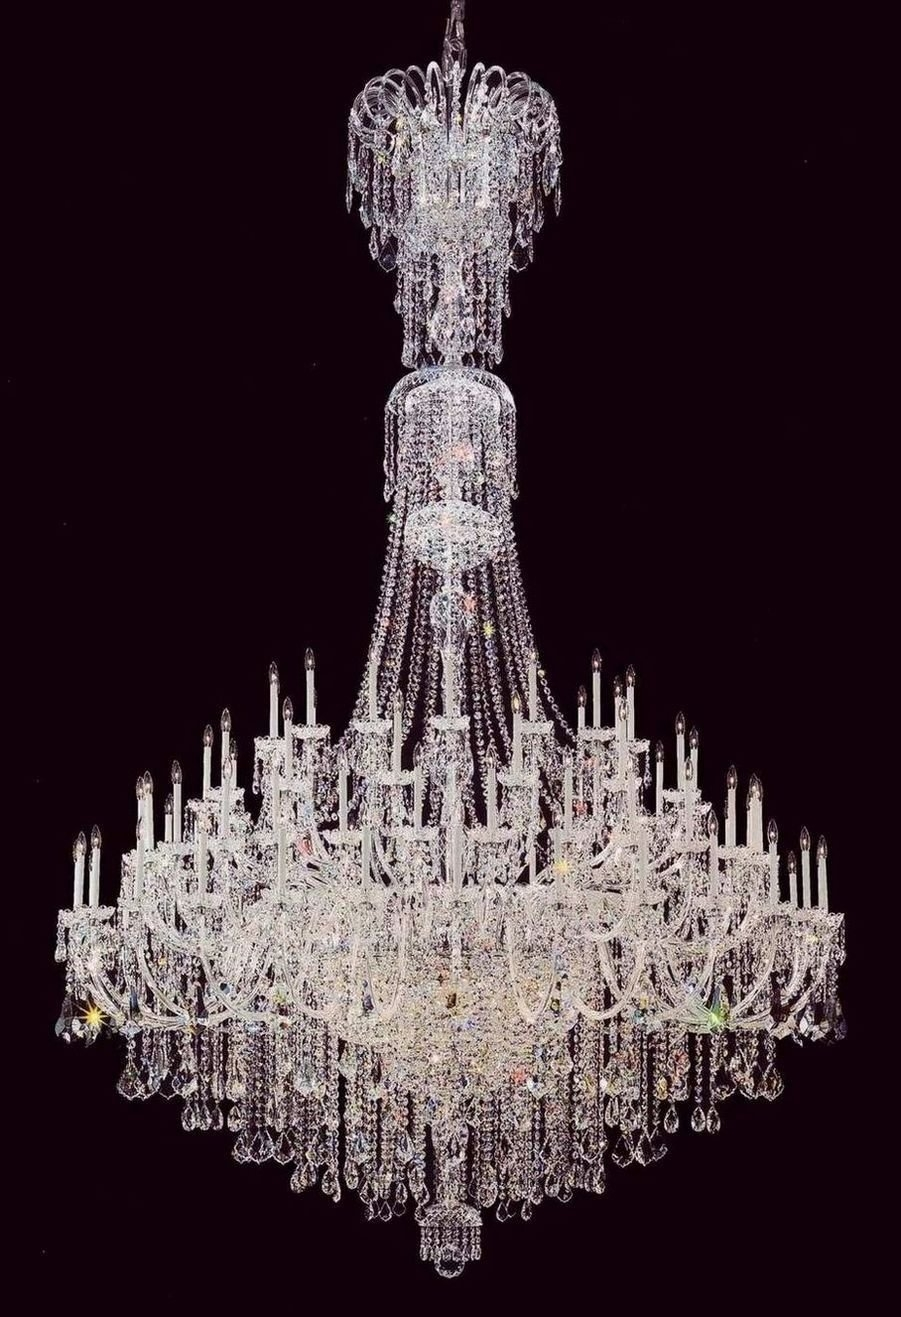 Antique Chandeliers Lighting Tiffany Windows Large Crystal Throughout Expensive Chandeliers (#1 of 12)